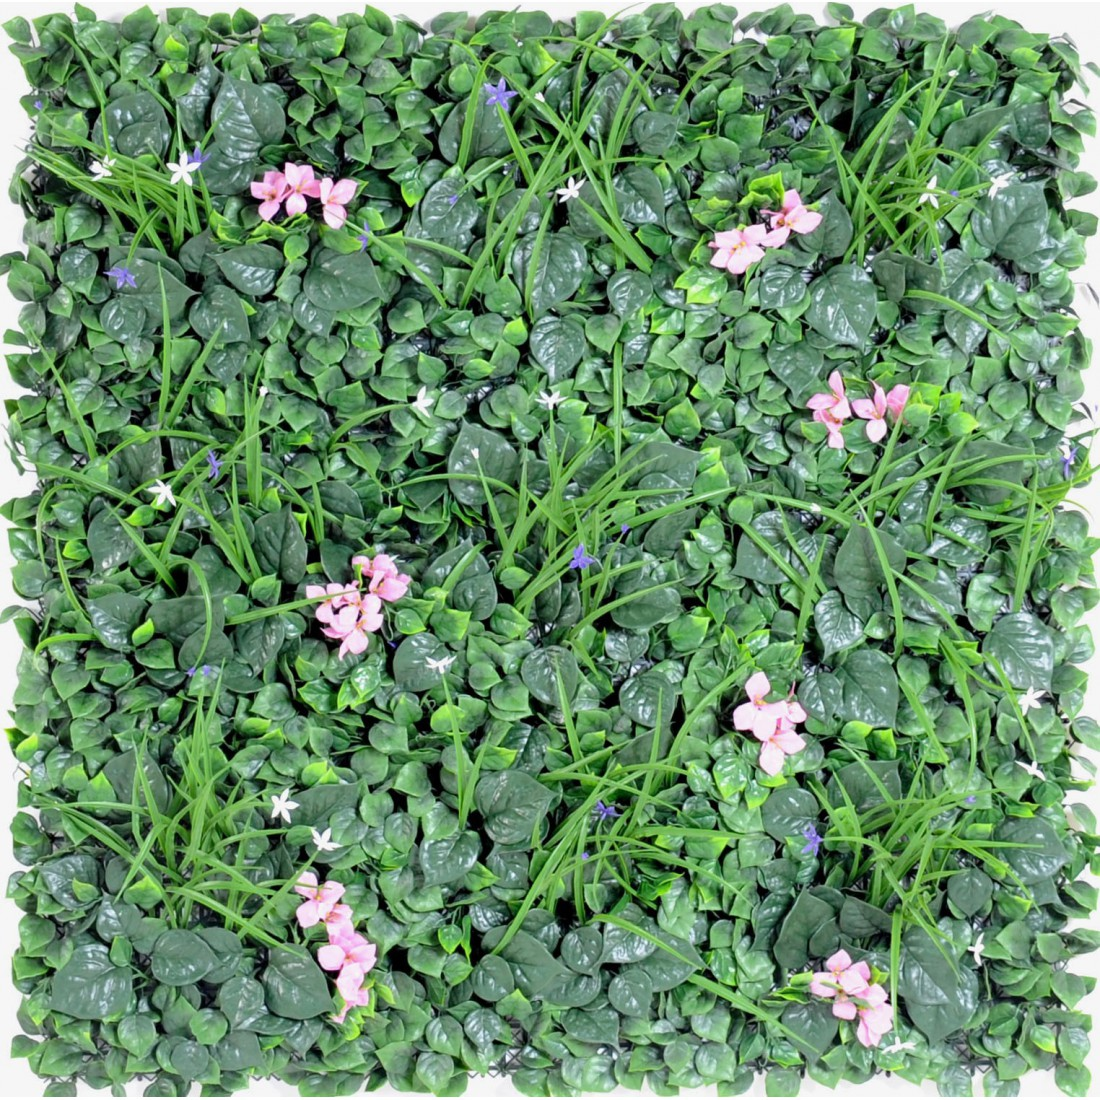 Mur vegetal b 100 x 100 cm plaques synth tique reflets for Mur vegetal exterieur synthetique